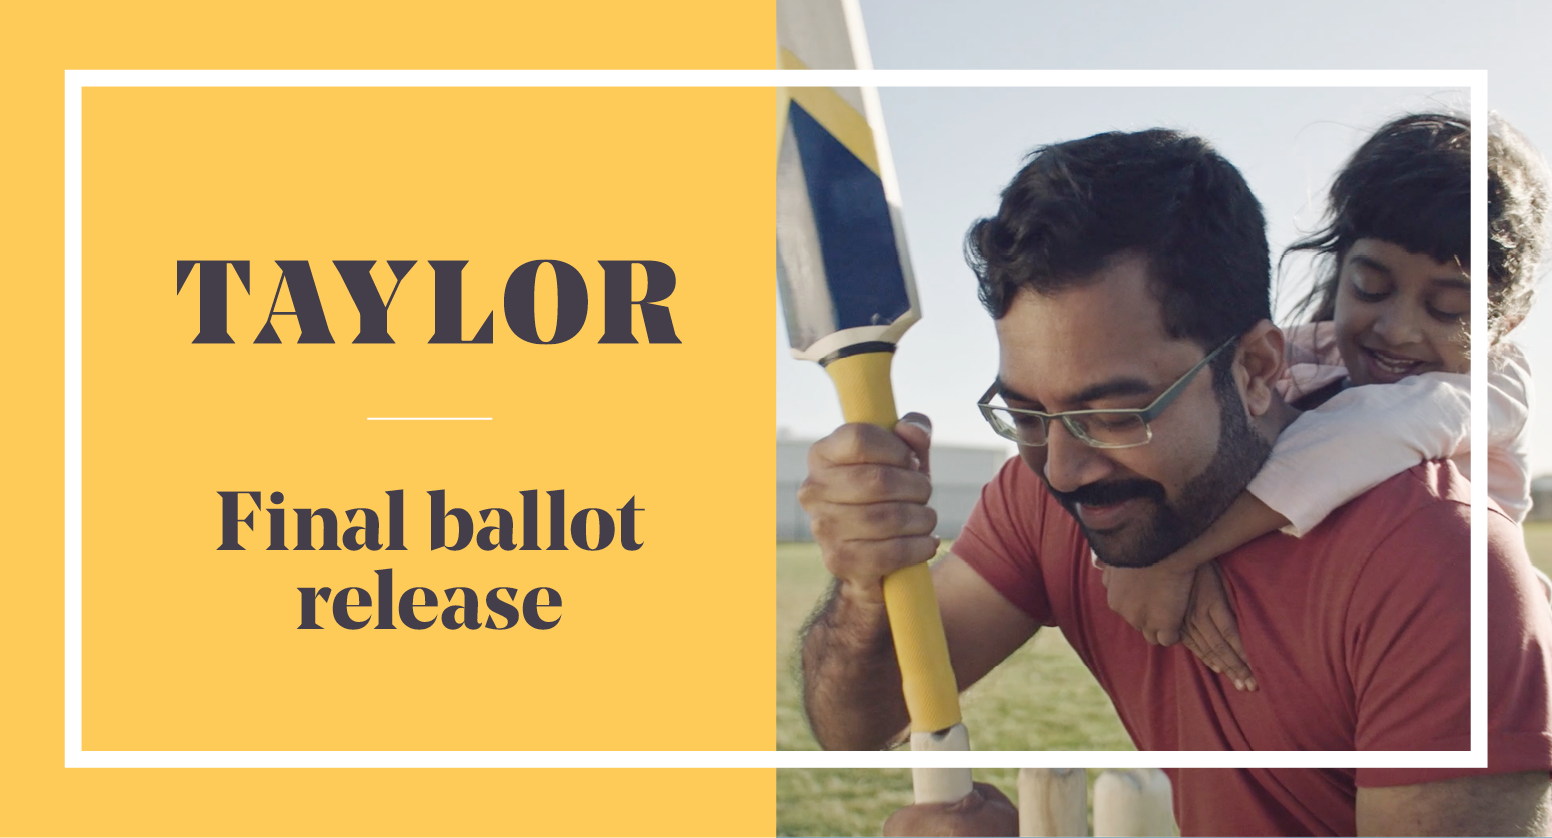 Get prepared for the final ballot release in Taylor